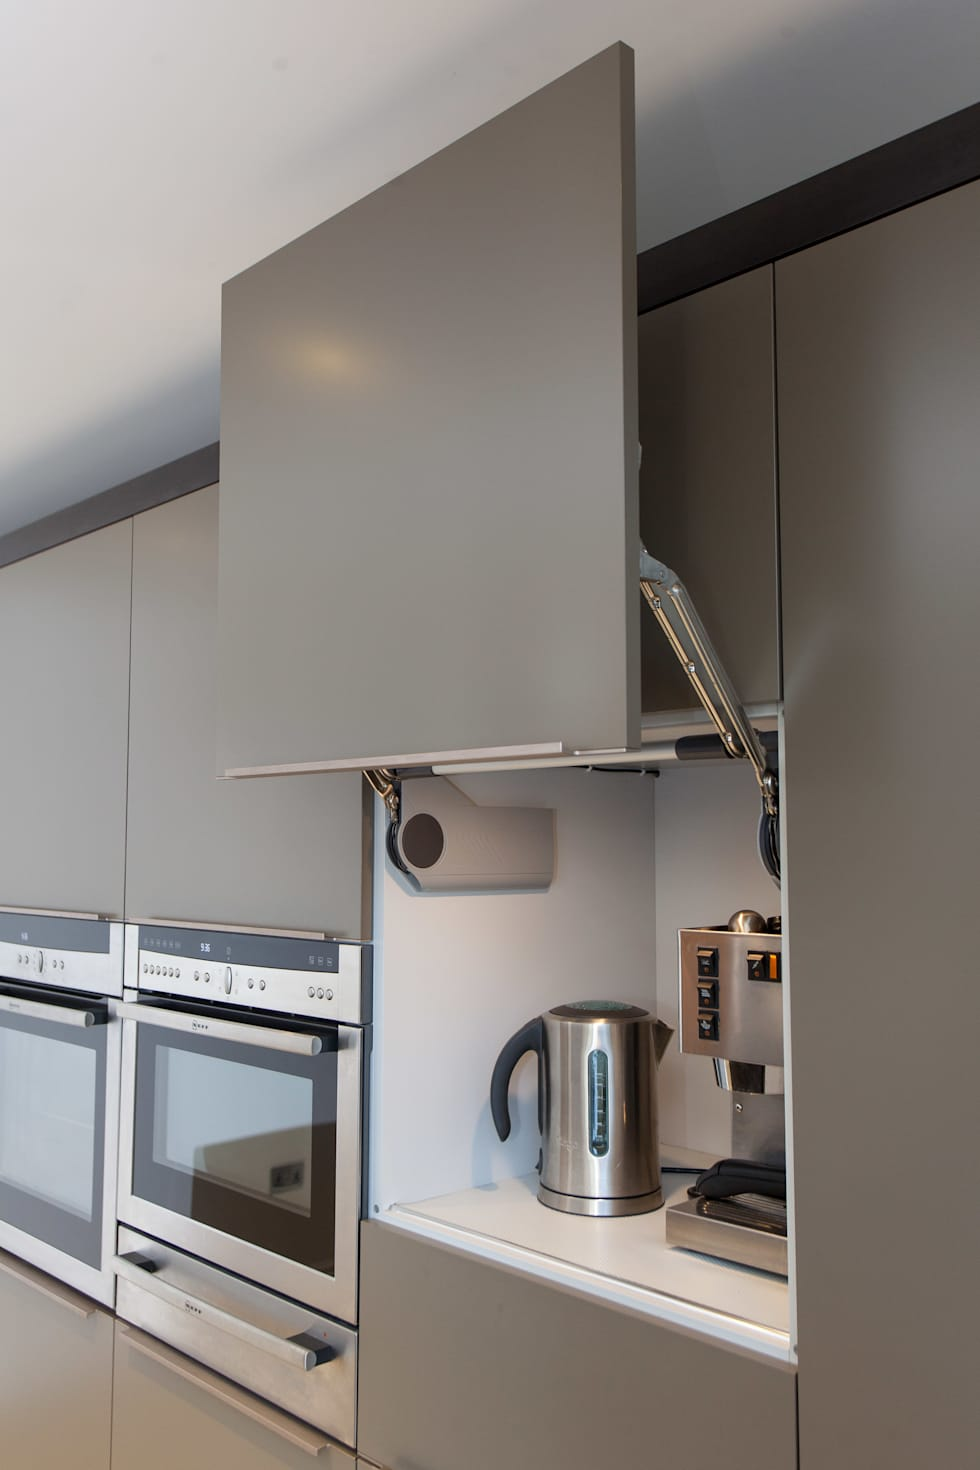 Toops barn modern kitchen by hampshire design consultancy for Design consultancy